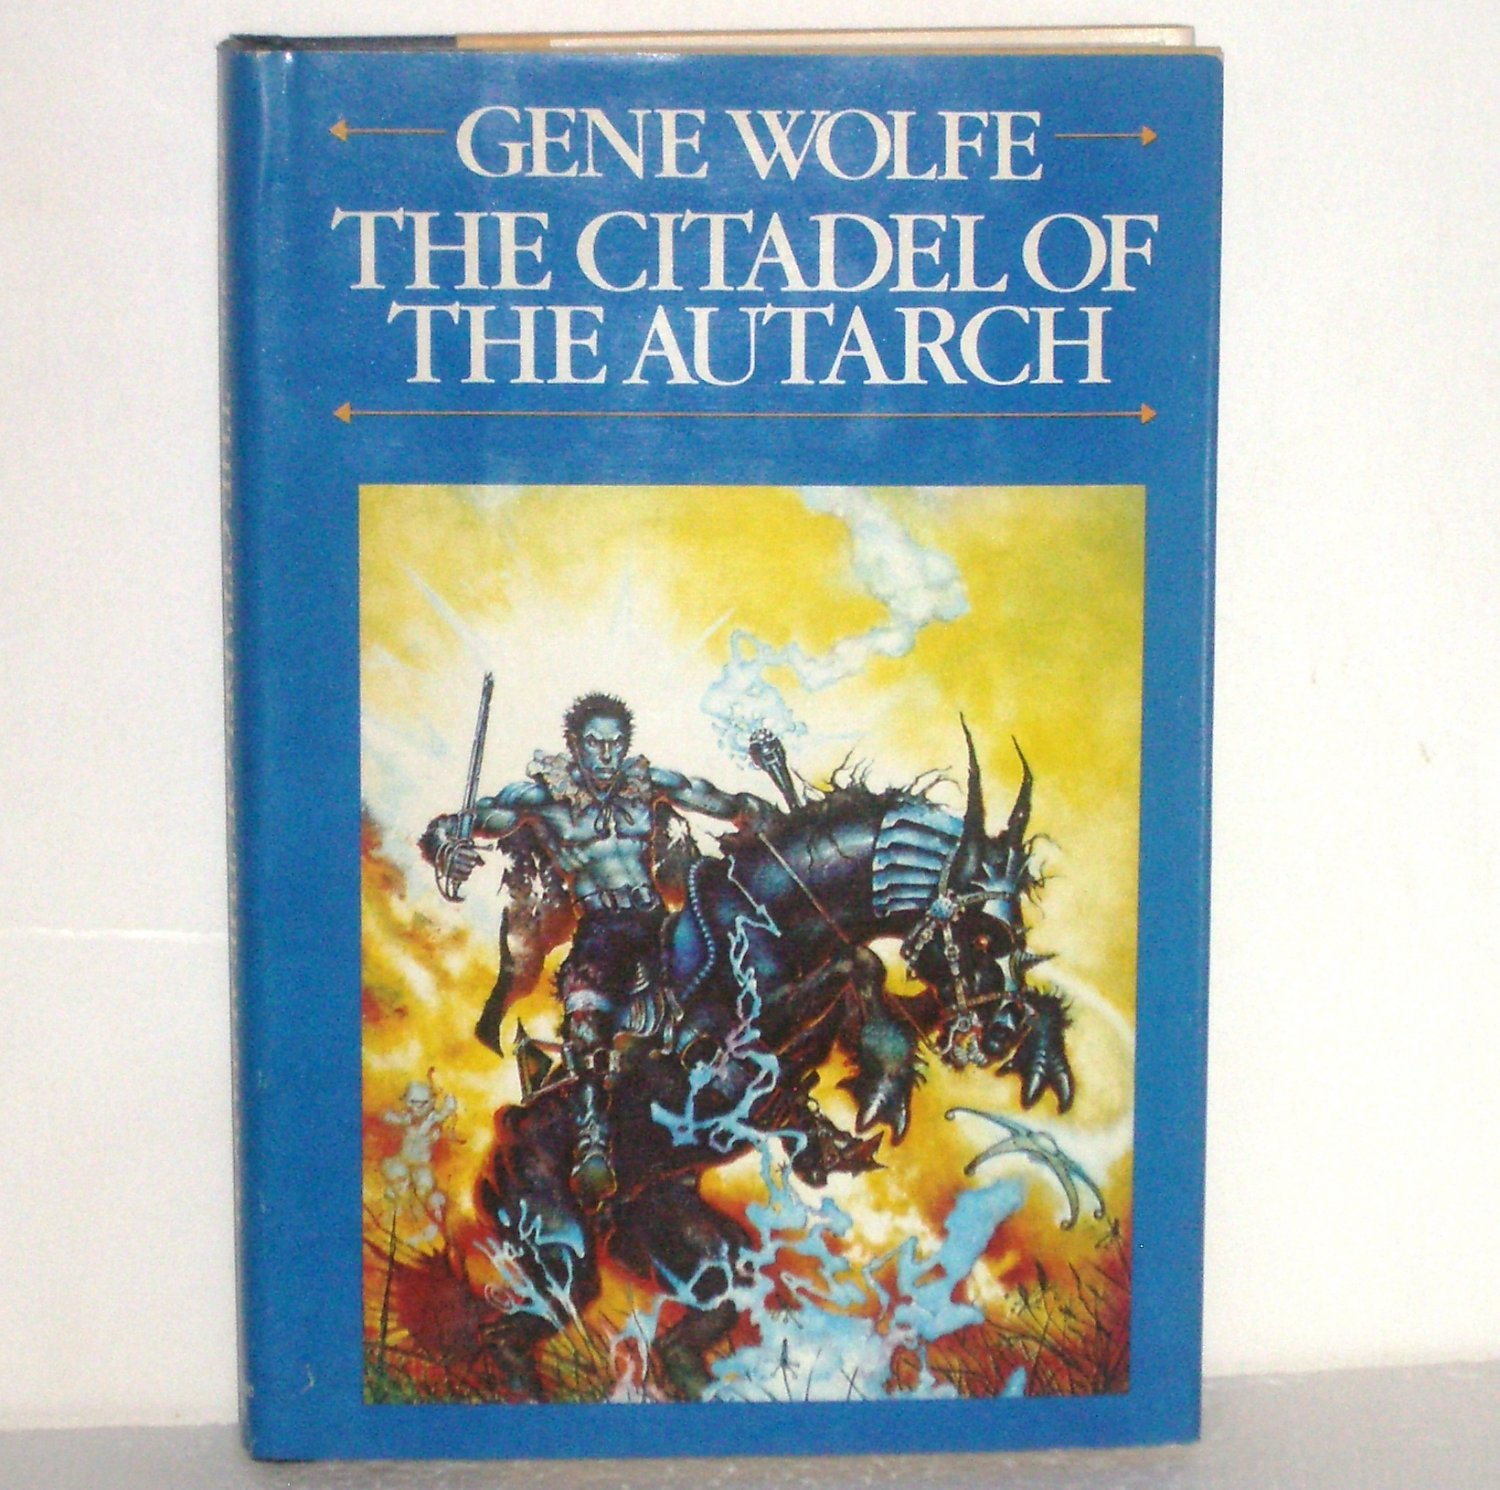 The Citadel of the Autarch Gene Wolfe Hardcover w Dust Jacket 1982 Volume 4 Book of the New Sun